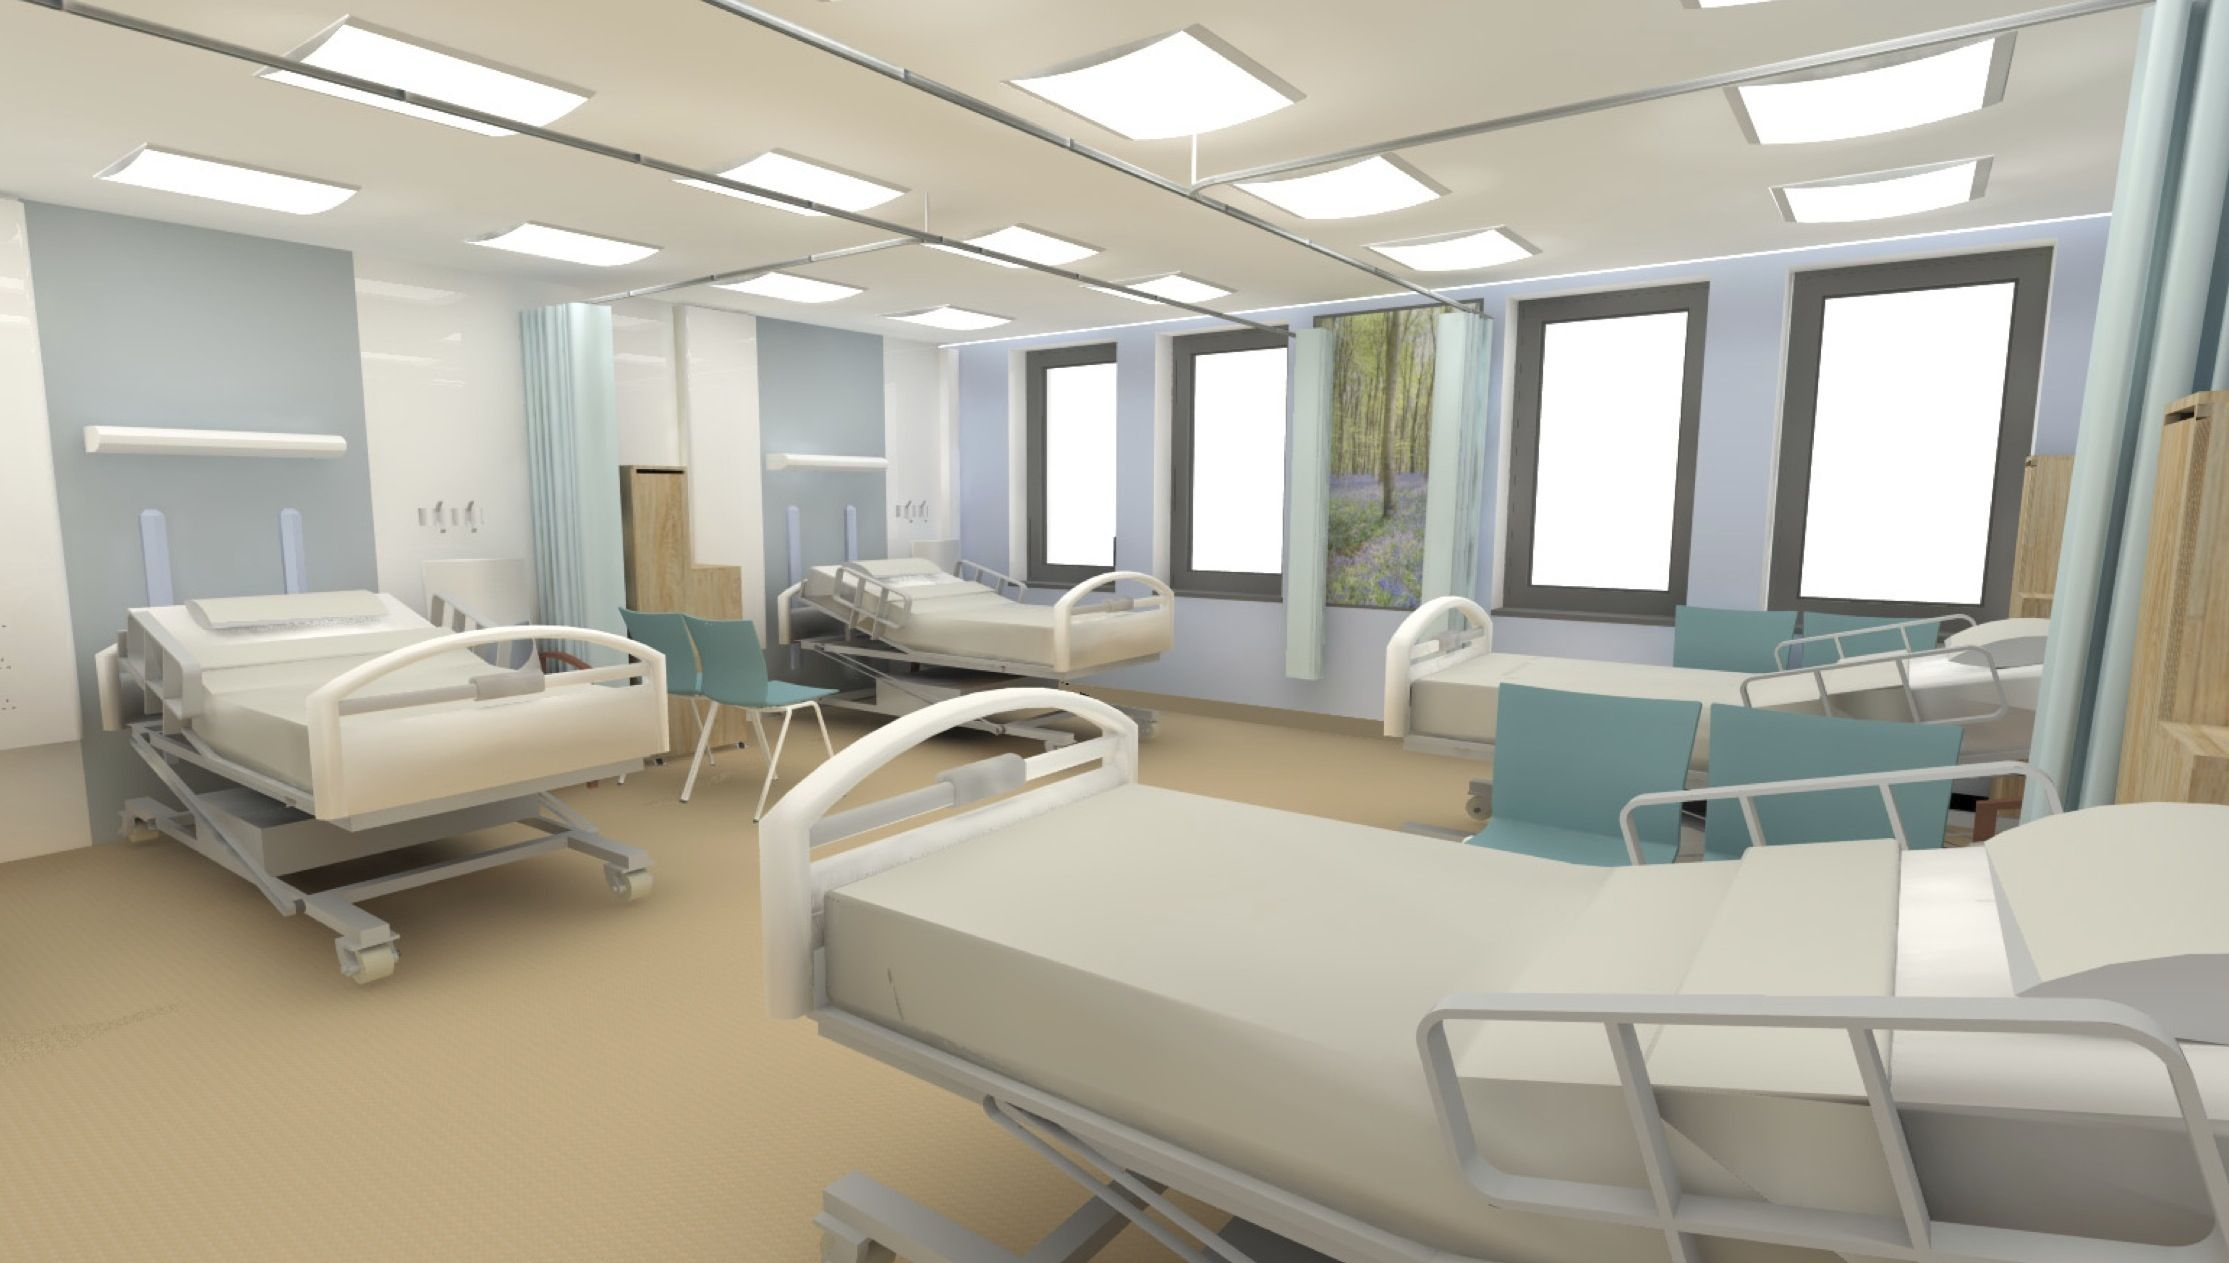 Modern hospital interior - Modern Hospital Wards Google Search